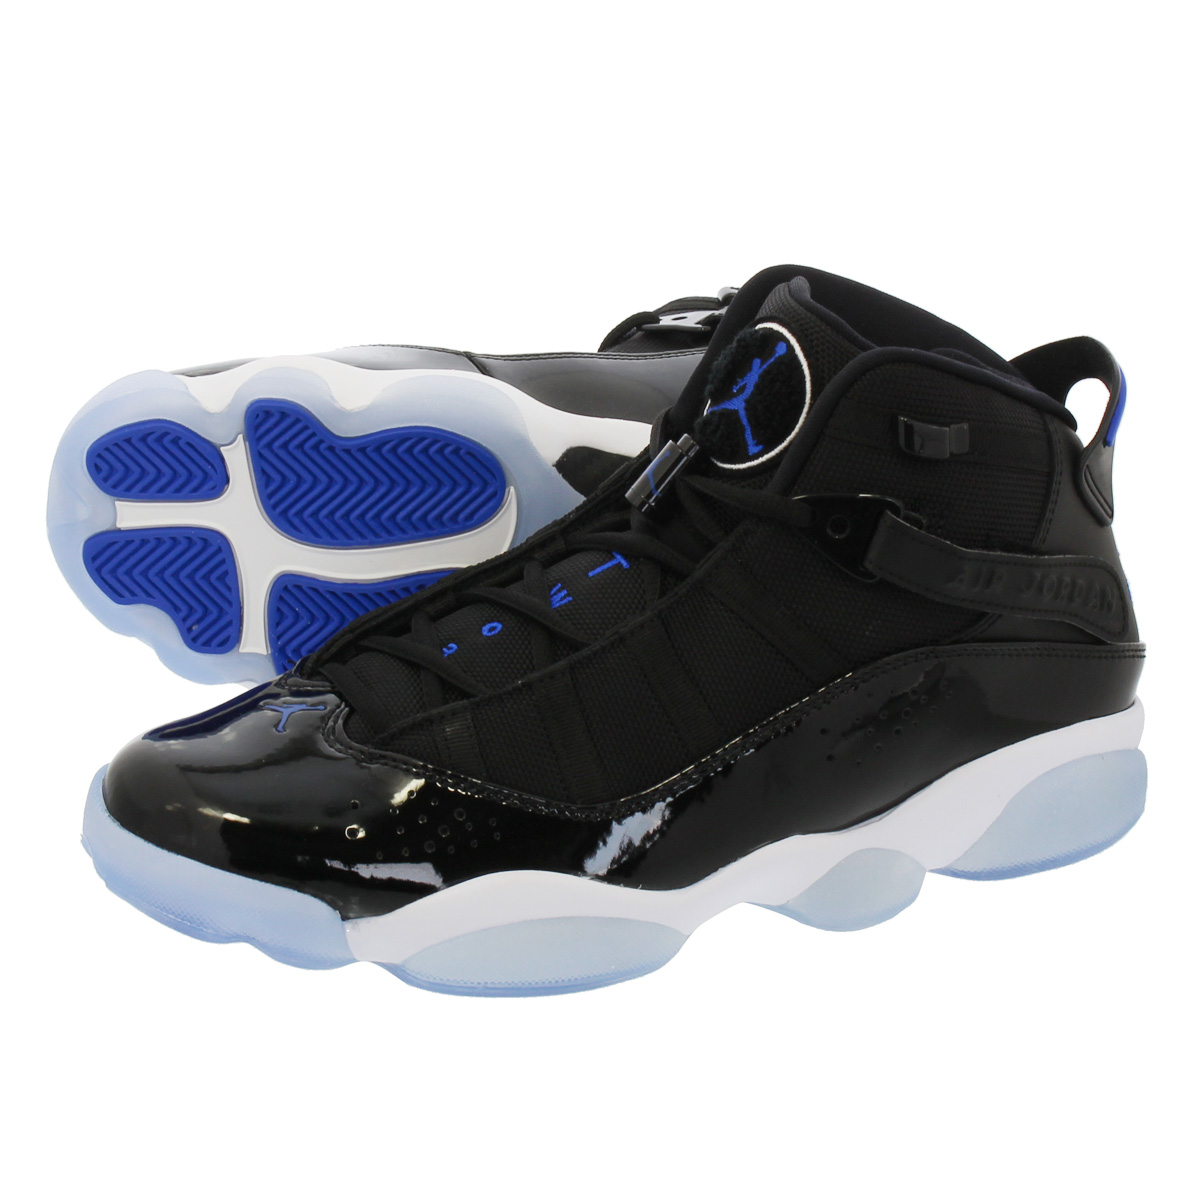 2309cf1bc919 JORDAN 6 RINGS  SPACE JAM  ナイキ ジョーダン 6 リングス BLACK HYPER ROYAL WHITE  322992-016 NIKE-スニーカー